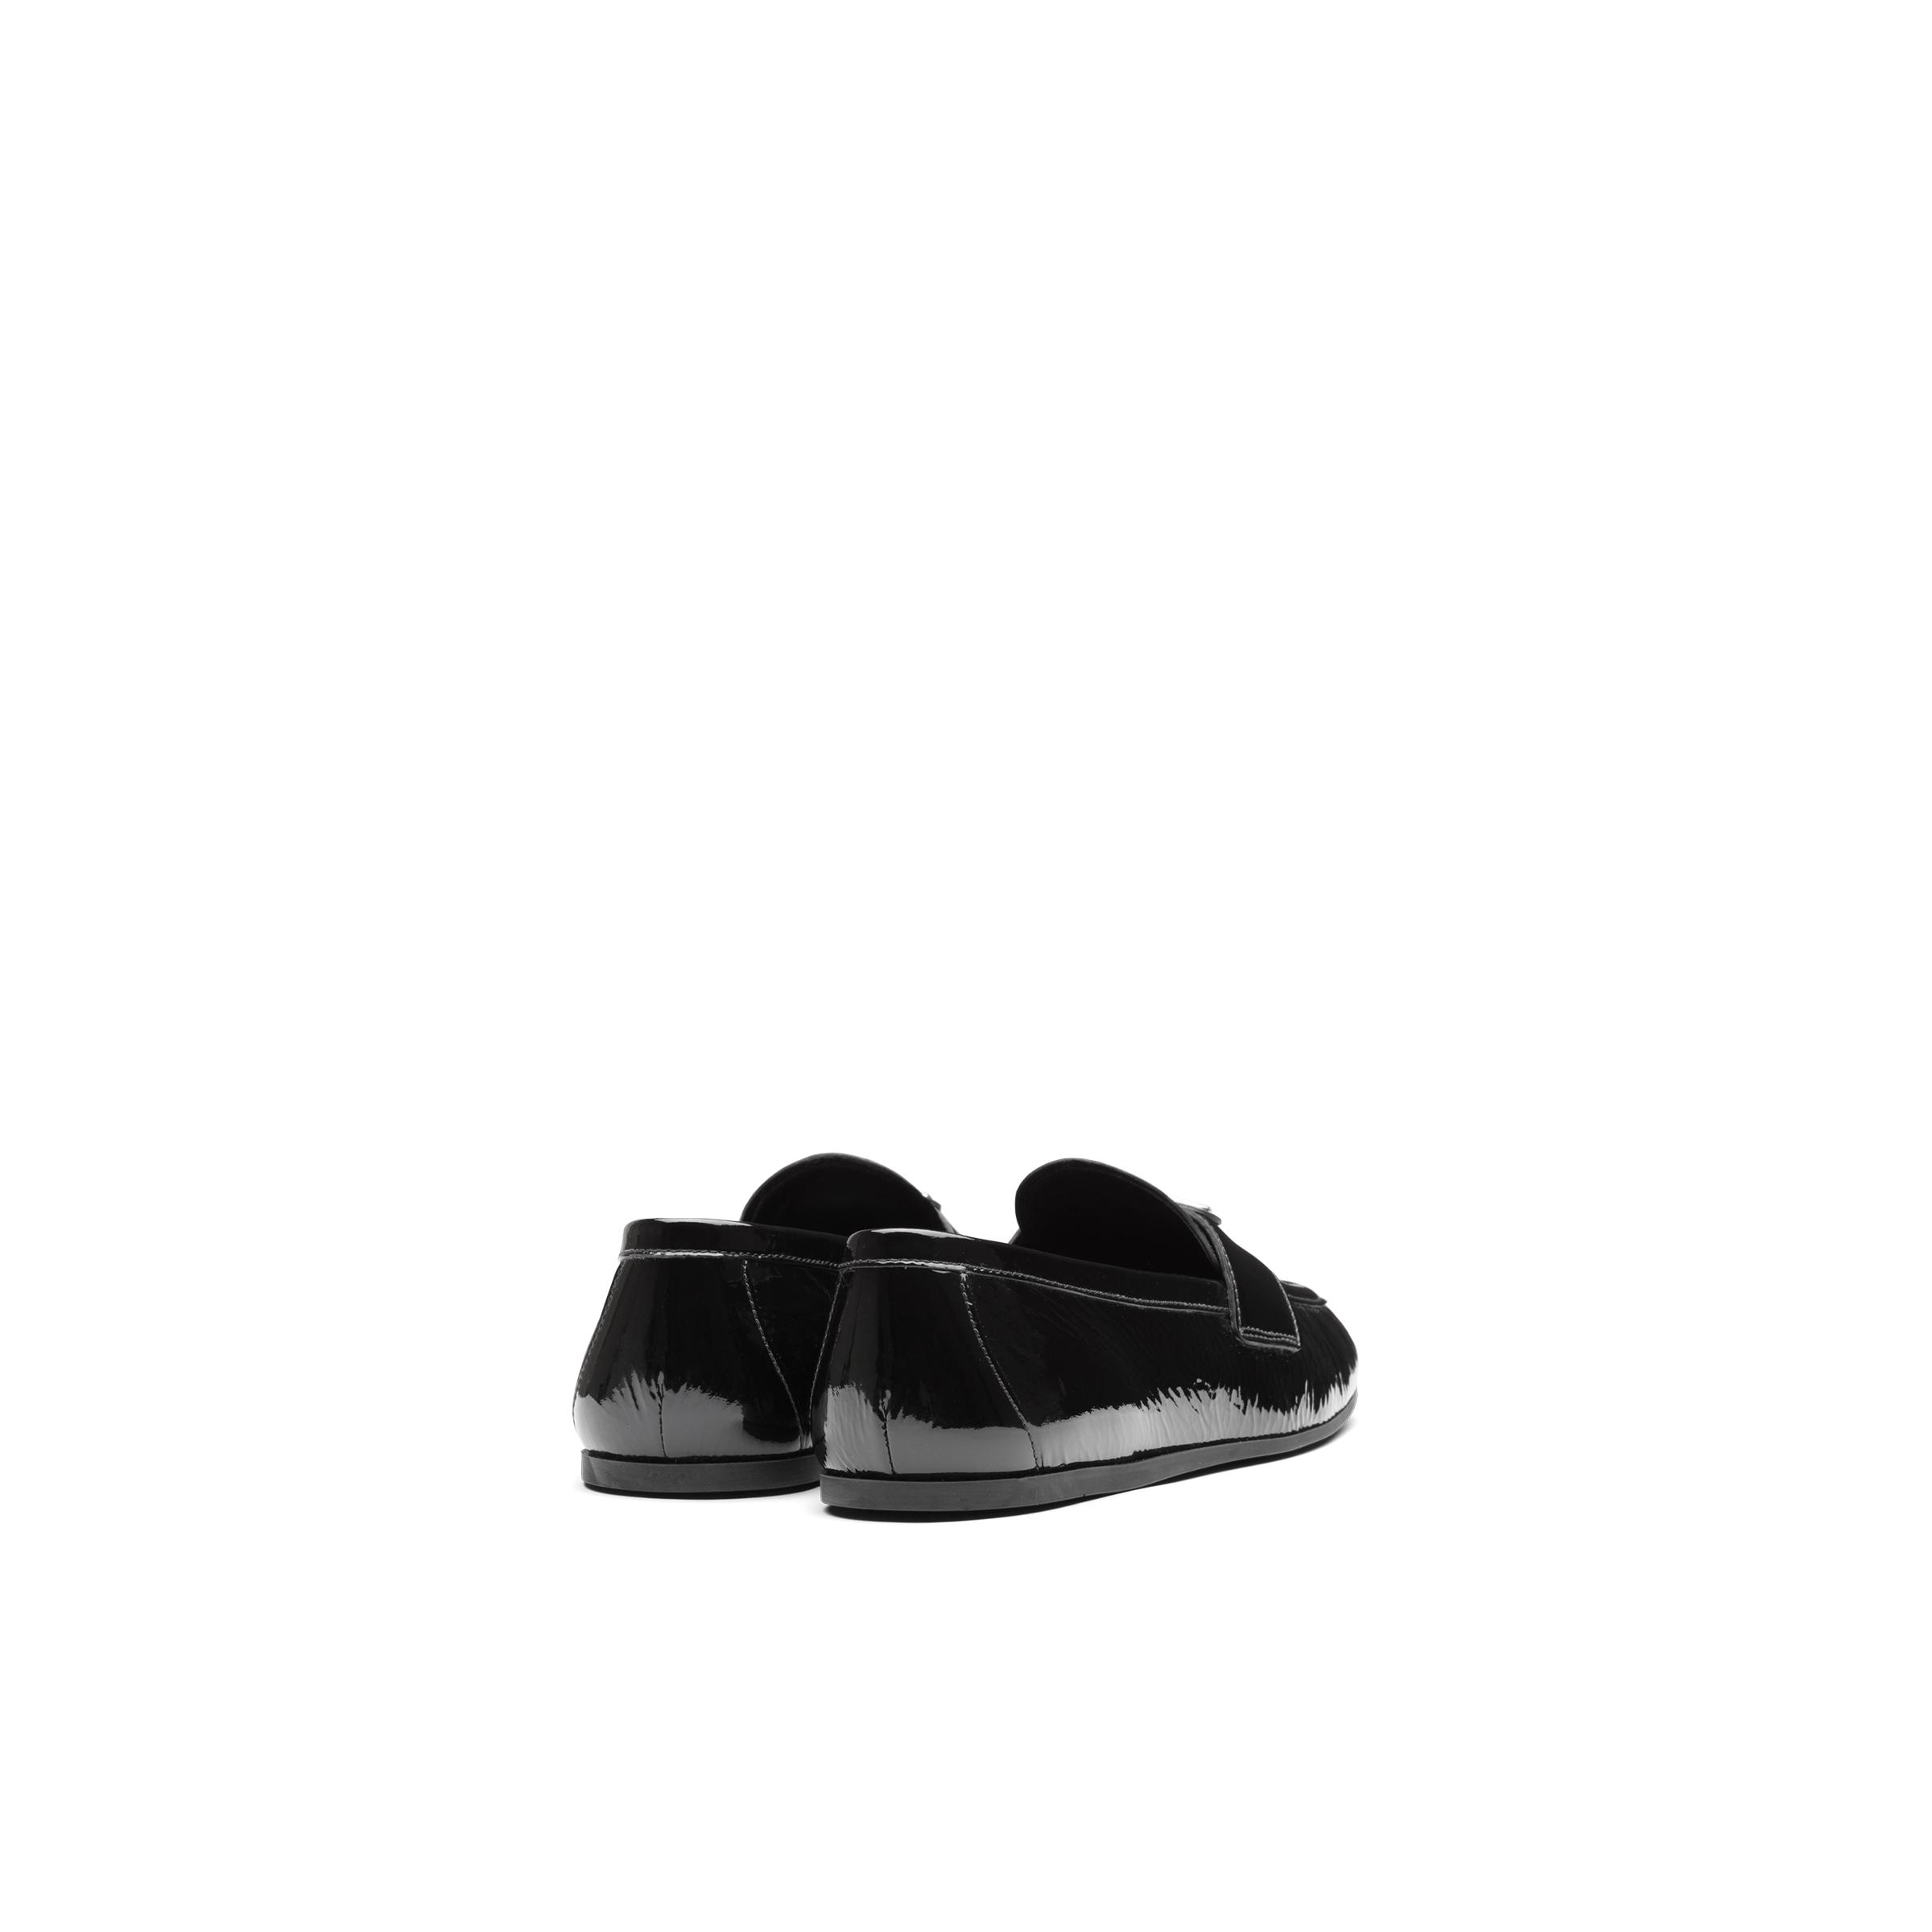 Patent Leather Loafers Women Black Size 36 3